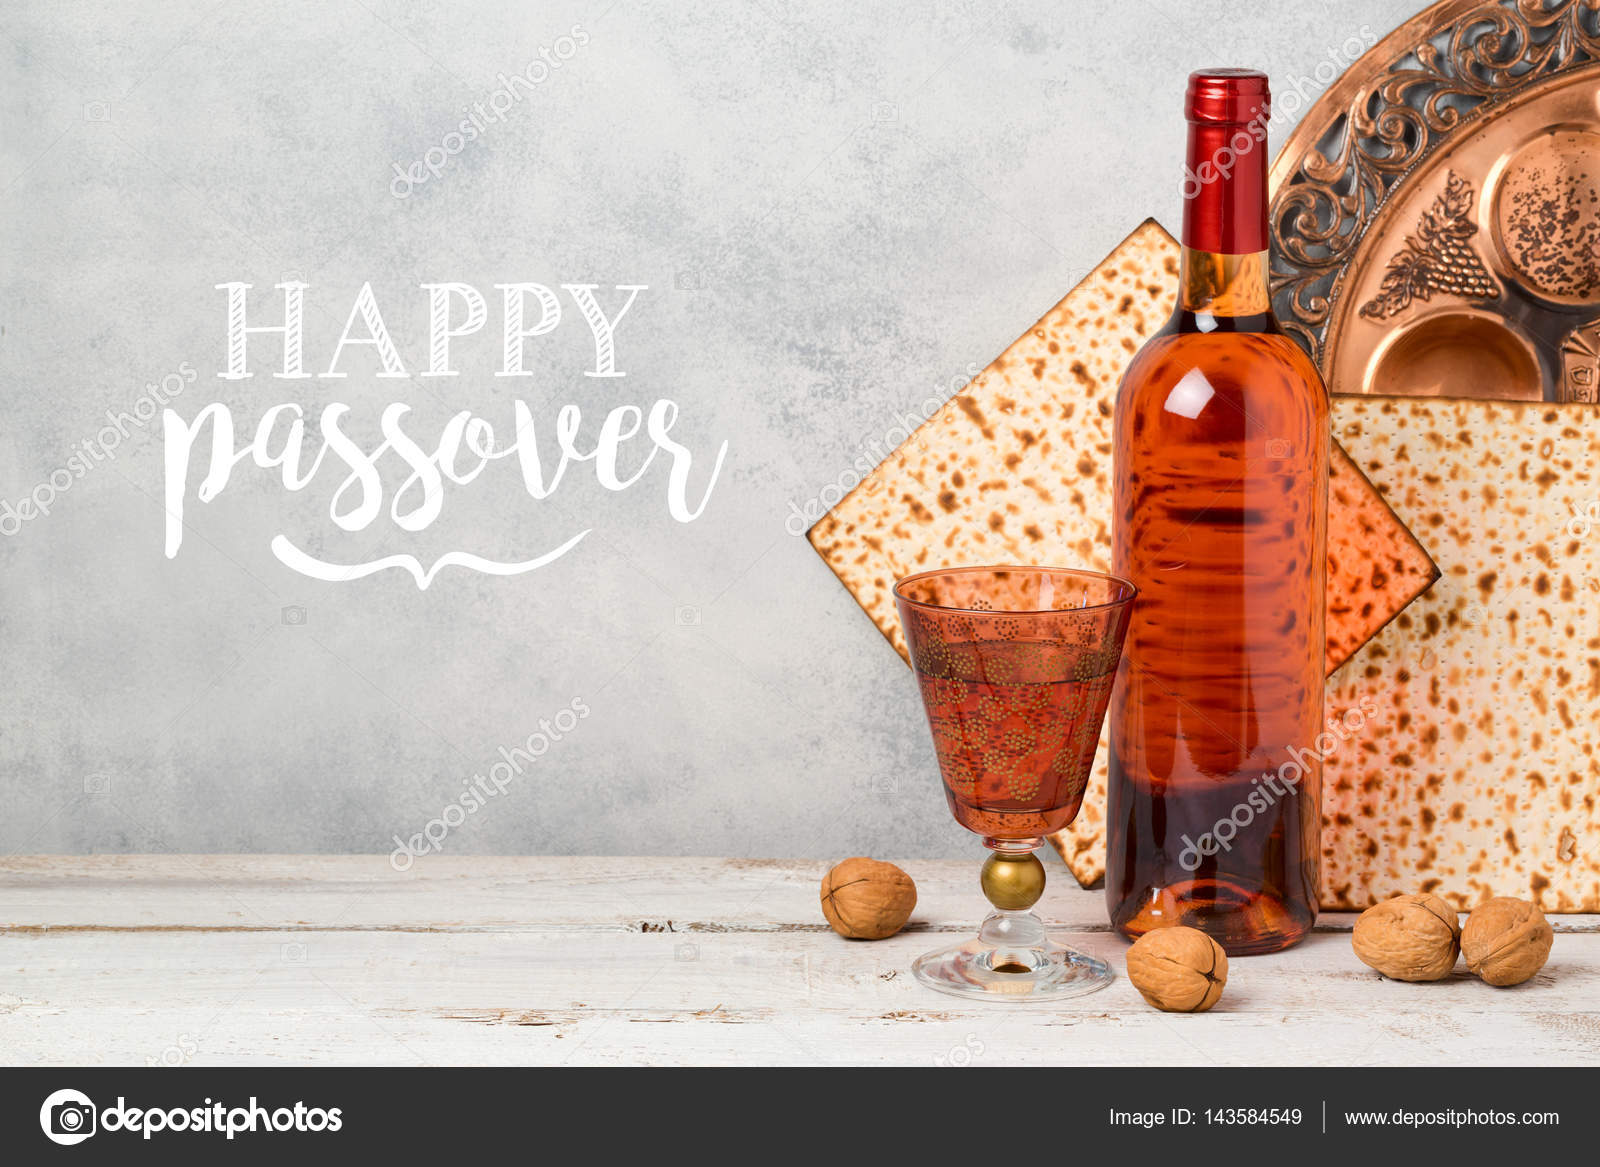 Passover holiday greeting card stock photo maglara 143584549 passover holiday greeting card stock photo kristyandbryce Images